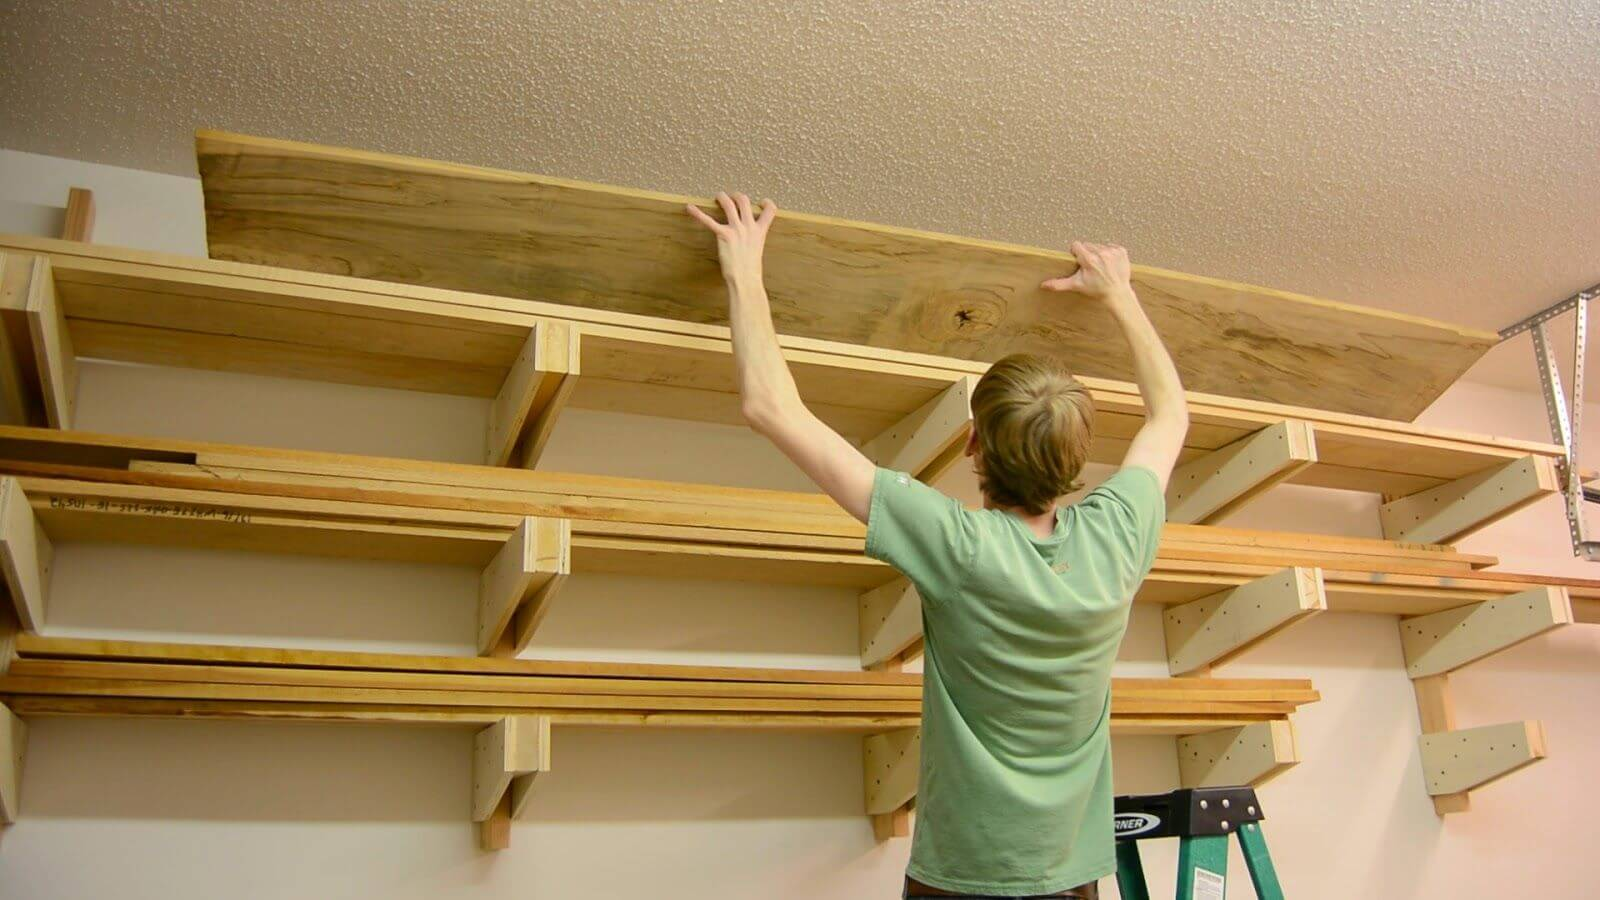 HOW TO BUILD WALL MOUNTED GARAGE SHELVES. 1. GRAB THE SUPPLIES